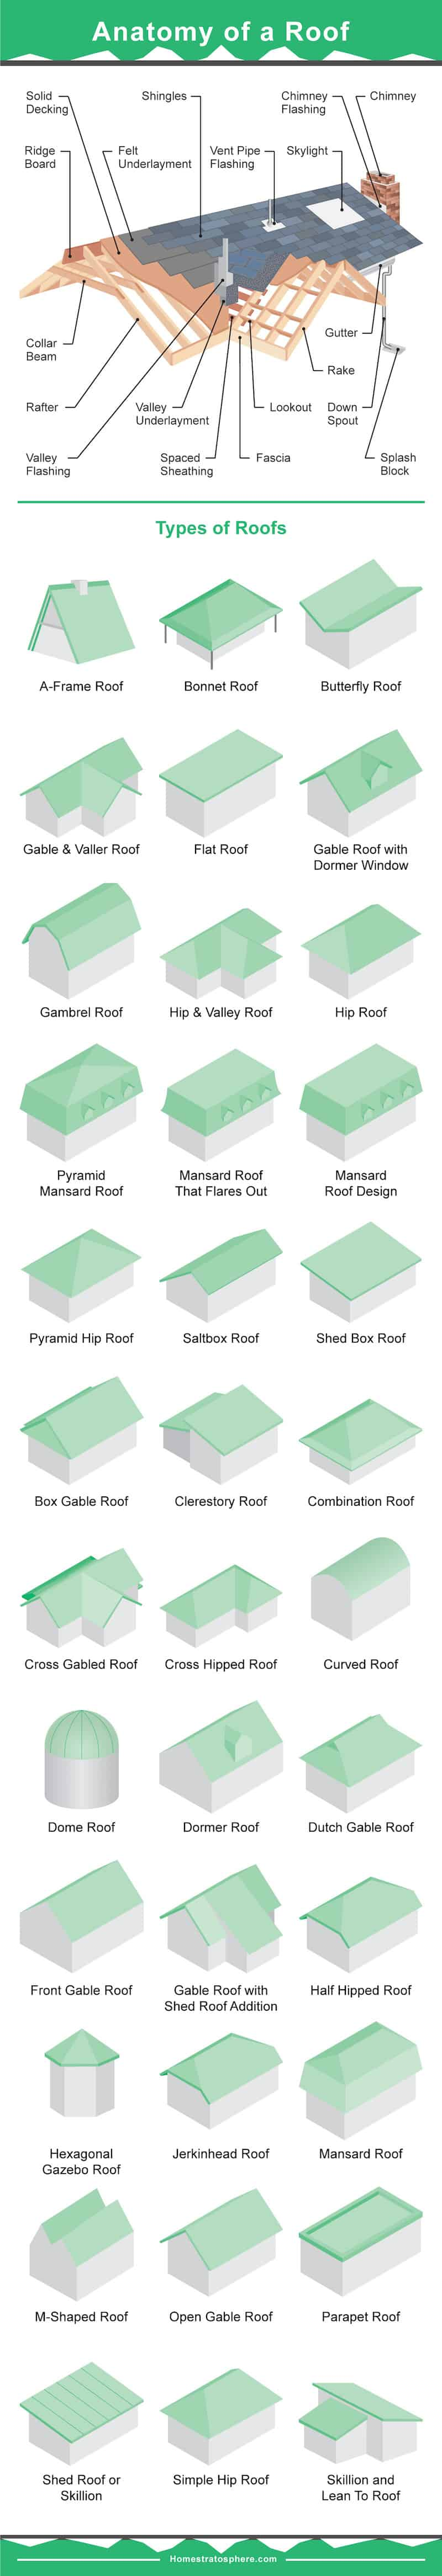 Massive house roof infographic showing the anatomy of a roof plus 36 roof styles.